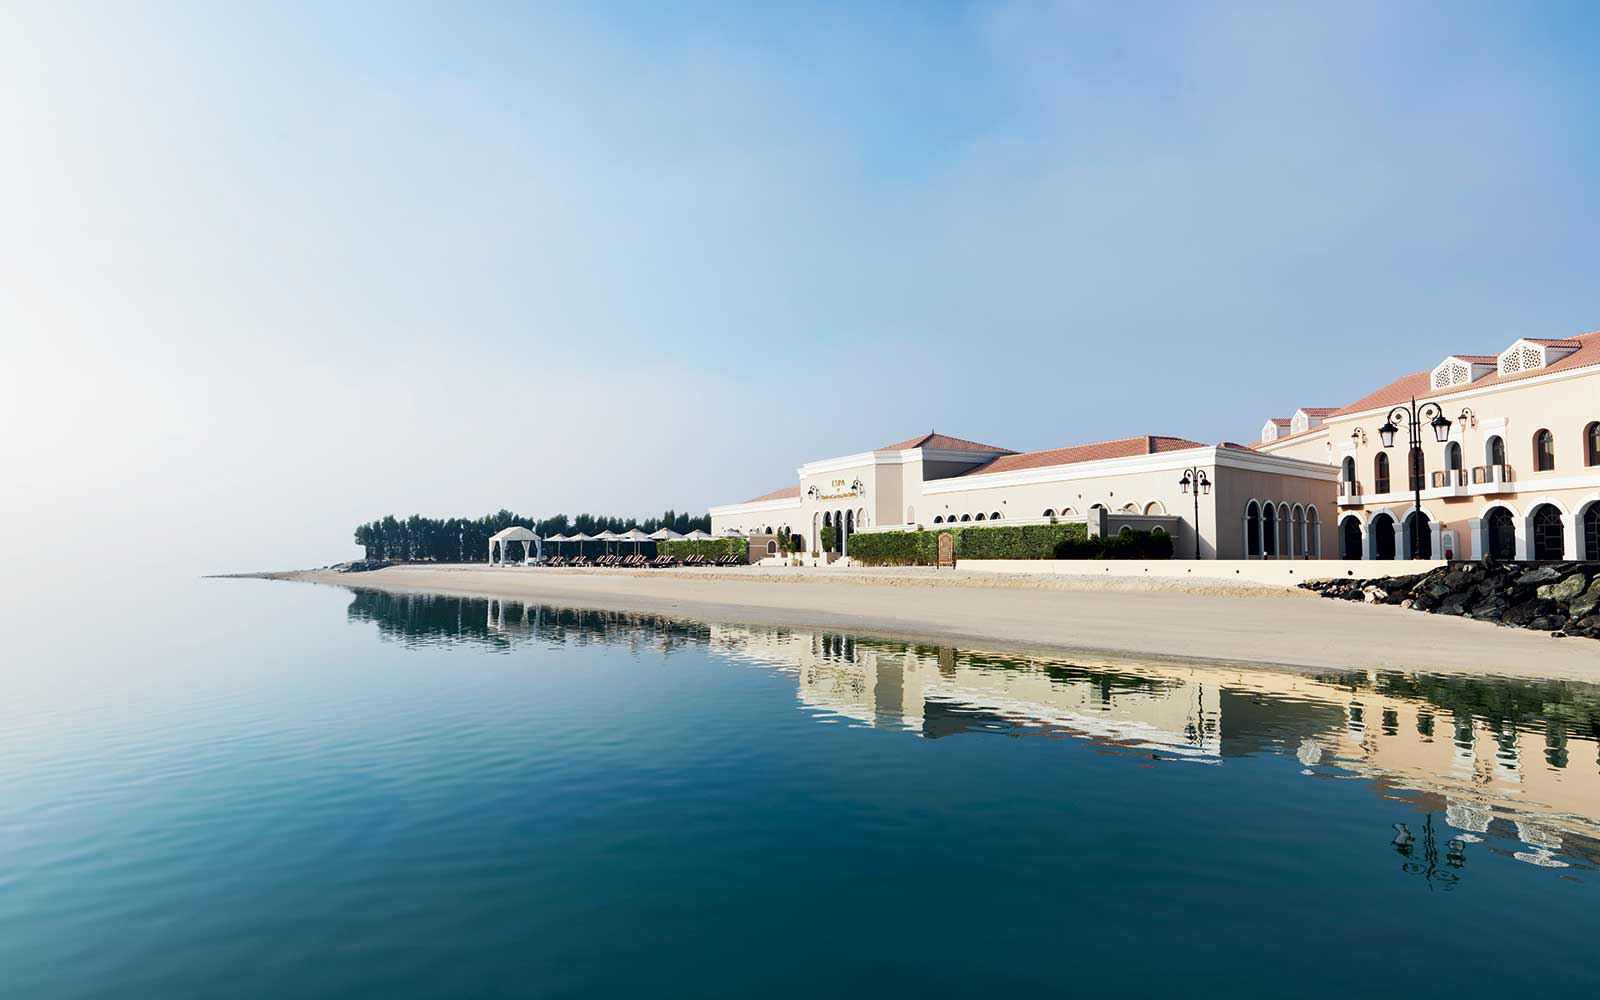 Ritz-Carlton Abu Dhabi, Grand Canal Resort Hotel in North Africa and Middle East